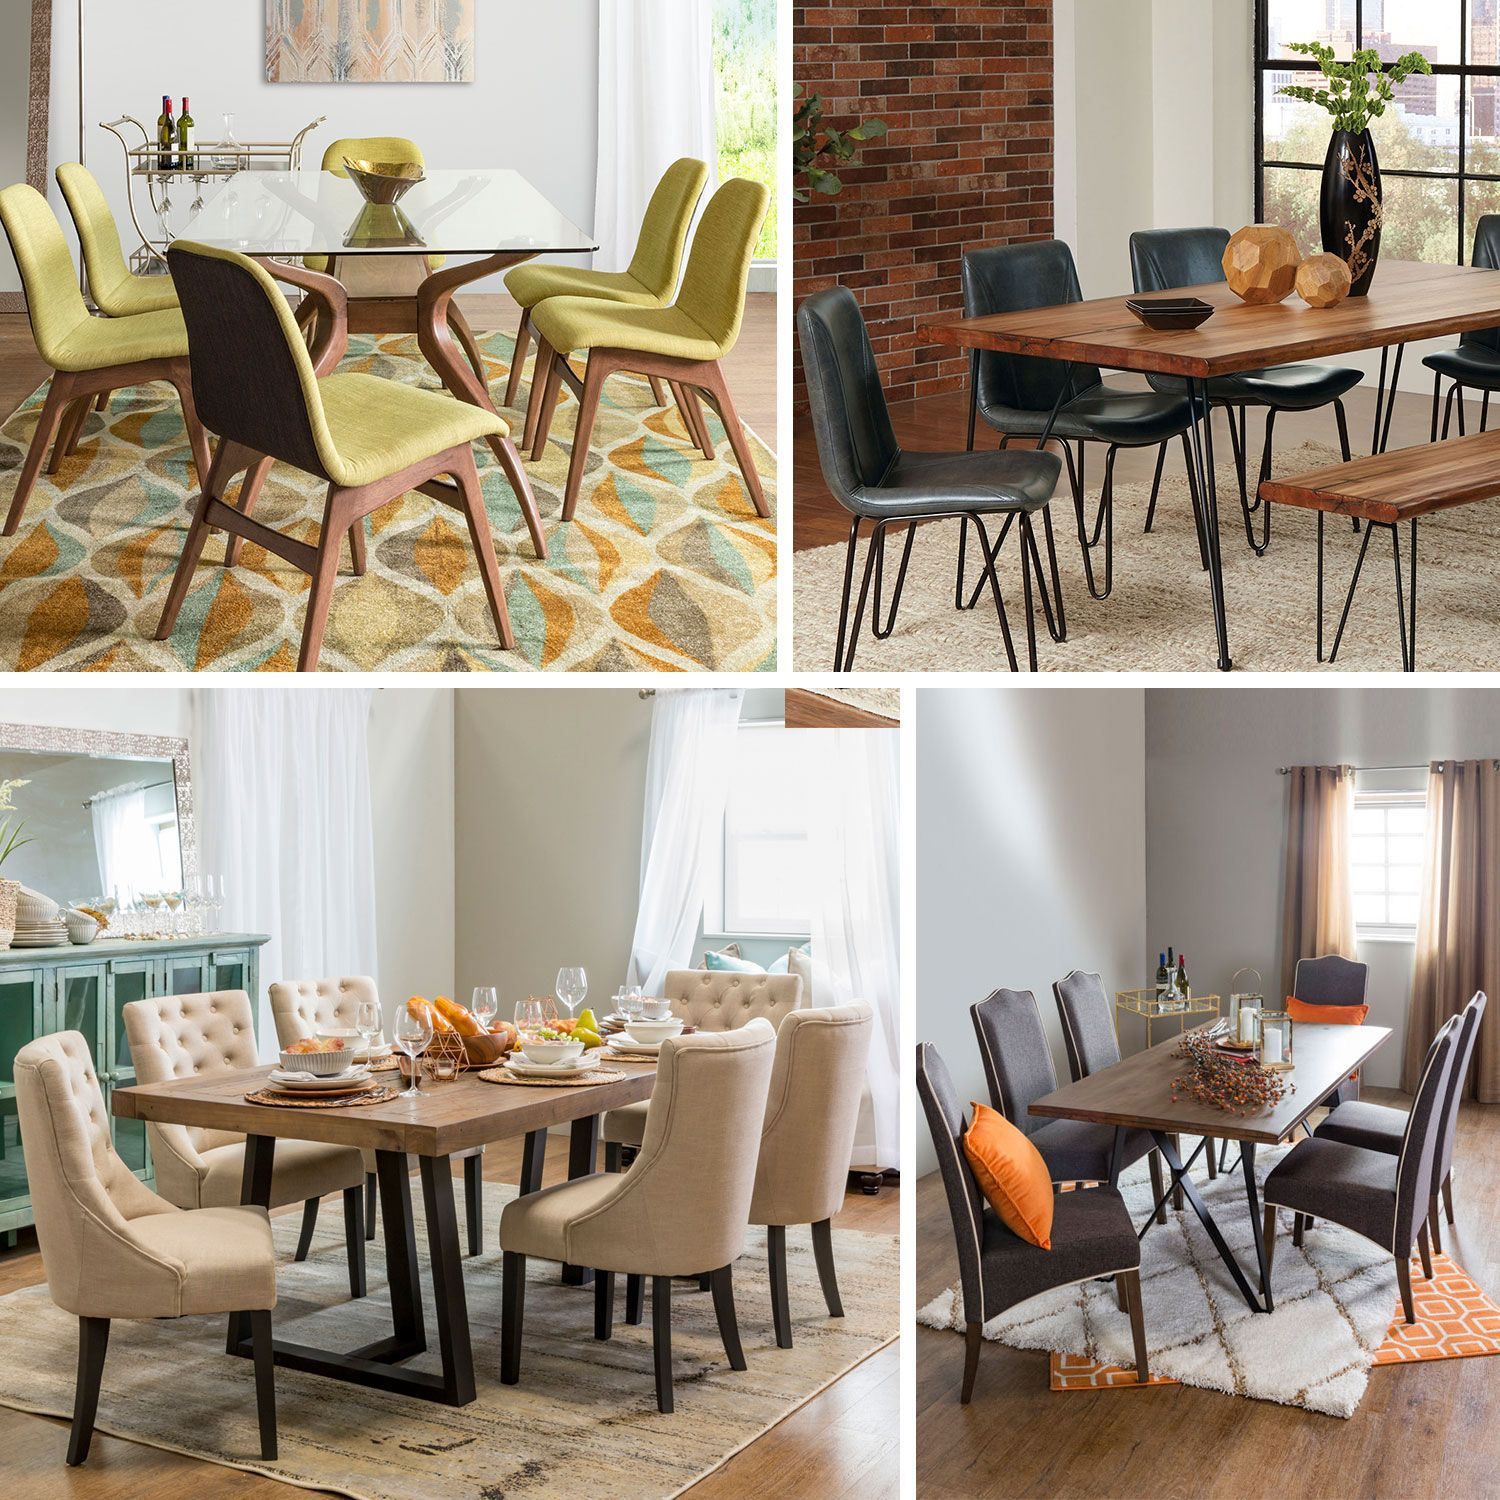 Update Your Dining Room With Modern Dining Tables Dining Room Design Dining Room Furniture Dining Room Decor #teak #living #room #furniture